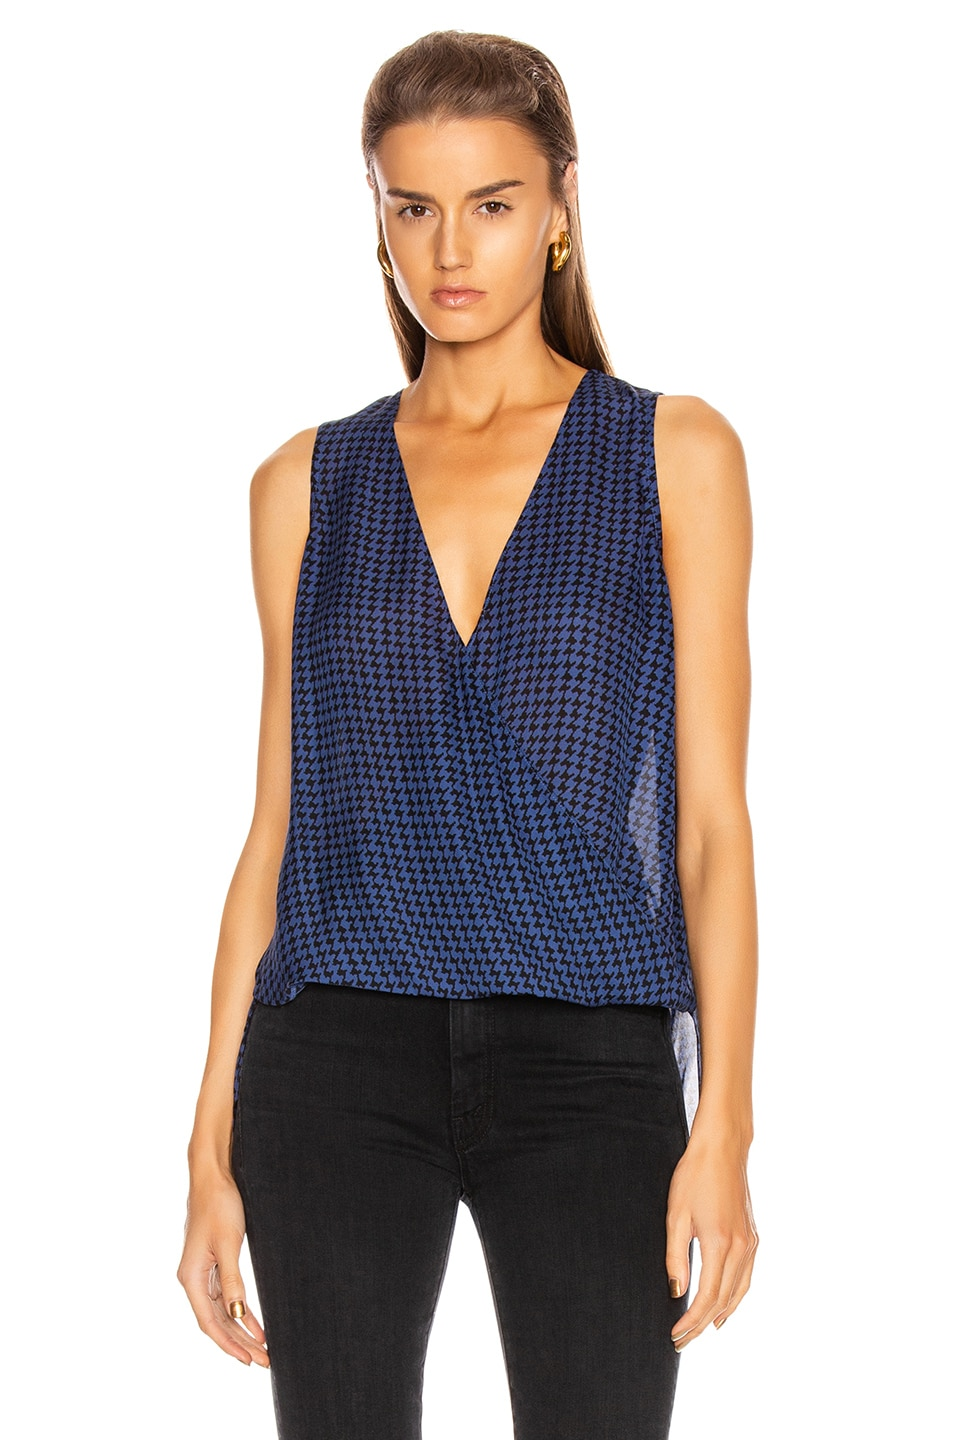 Image 2 of L'AGENCE Mila Draped Sleeveless Top in Black & Oceana Houndstooth